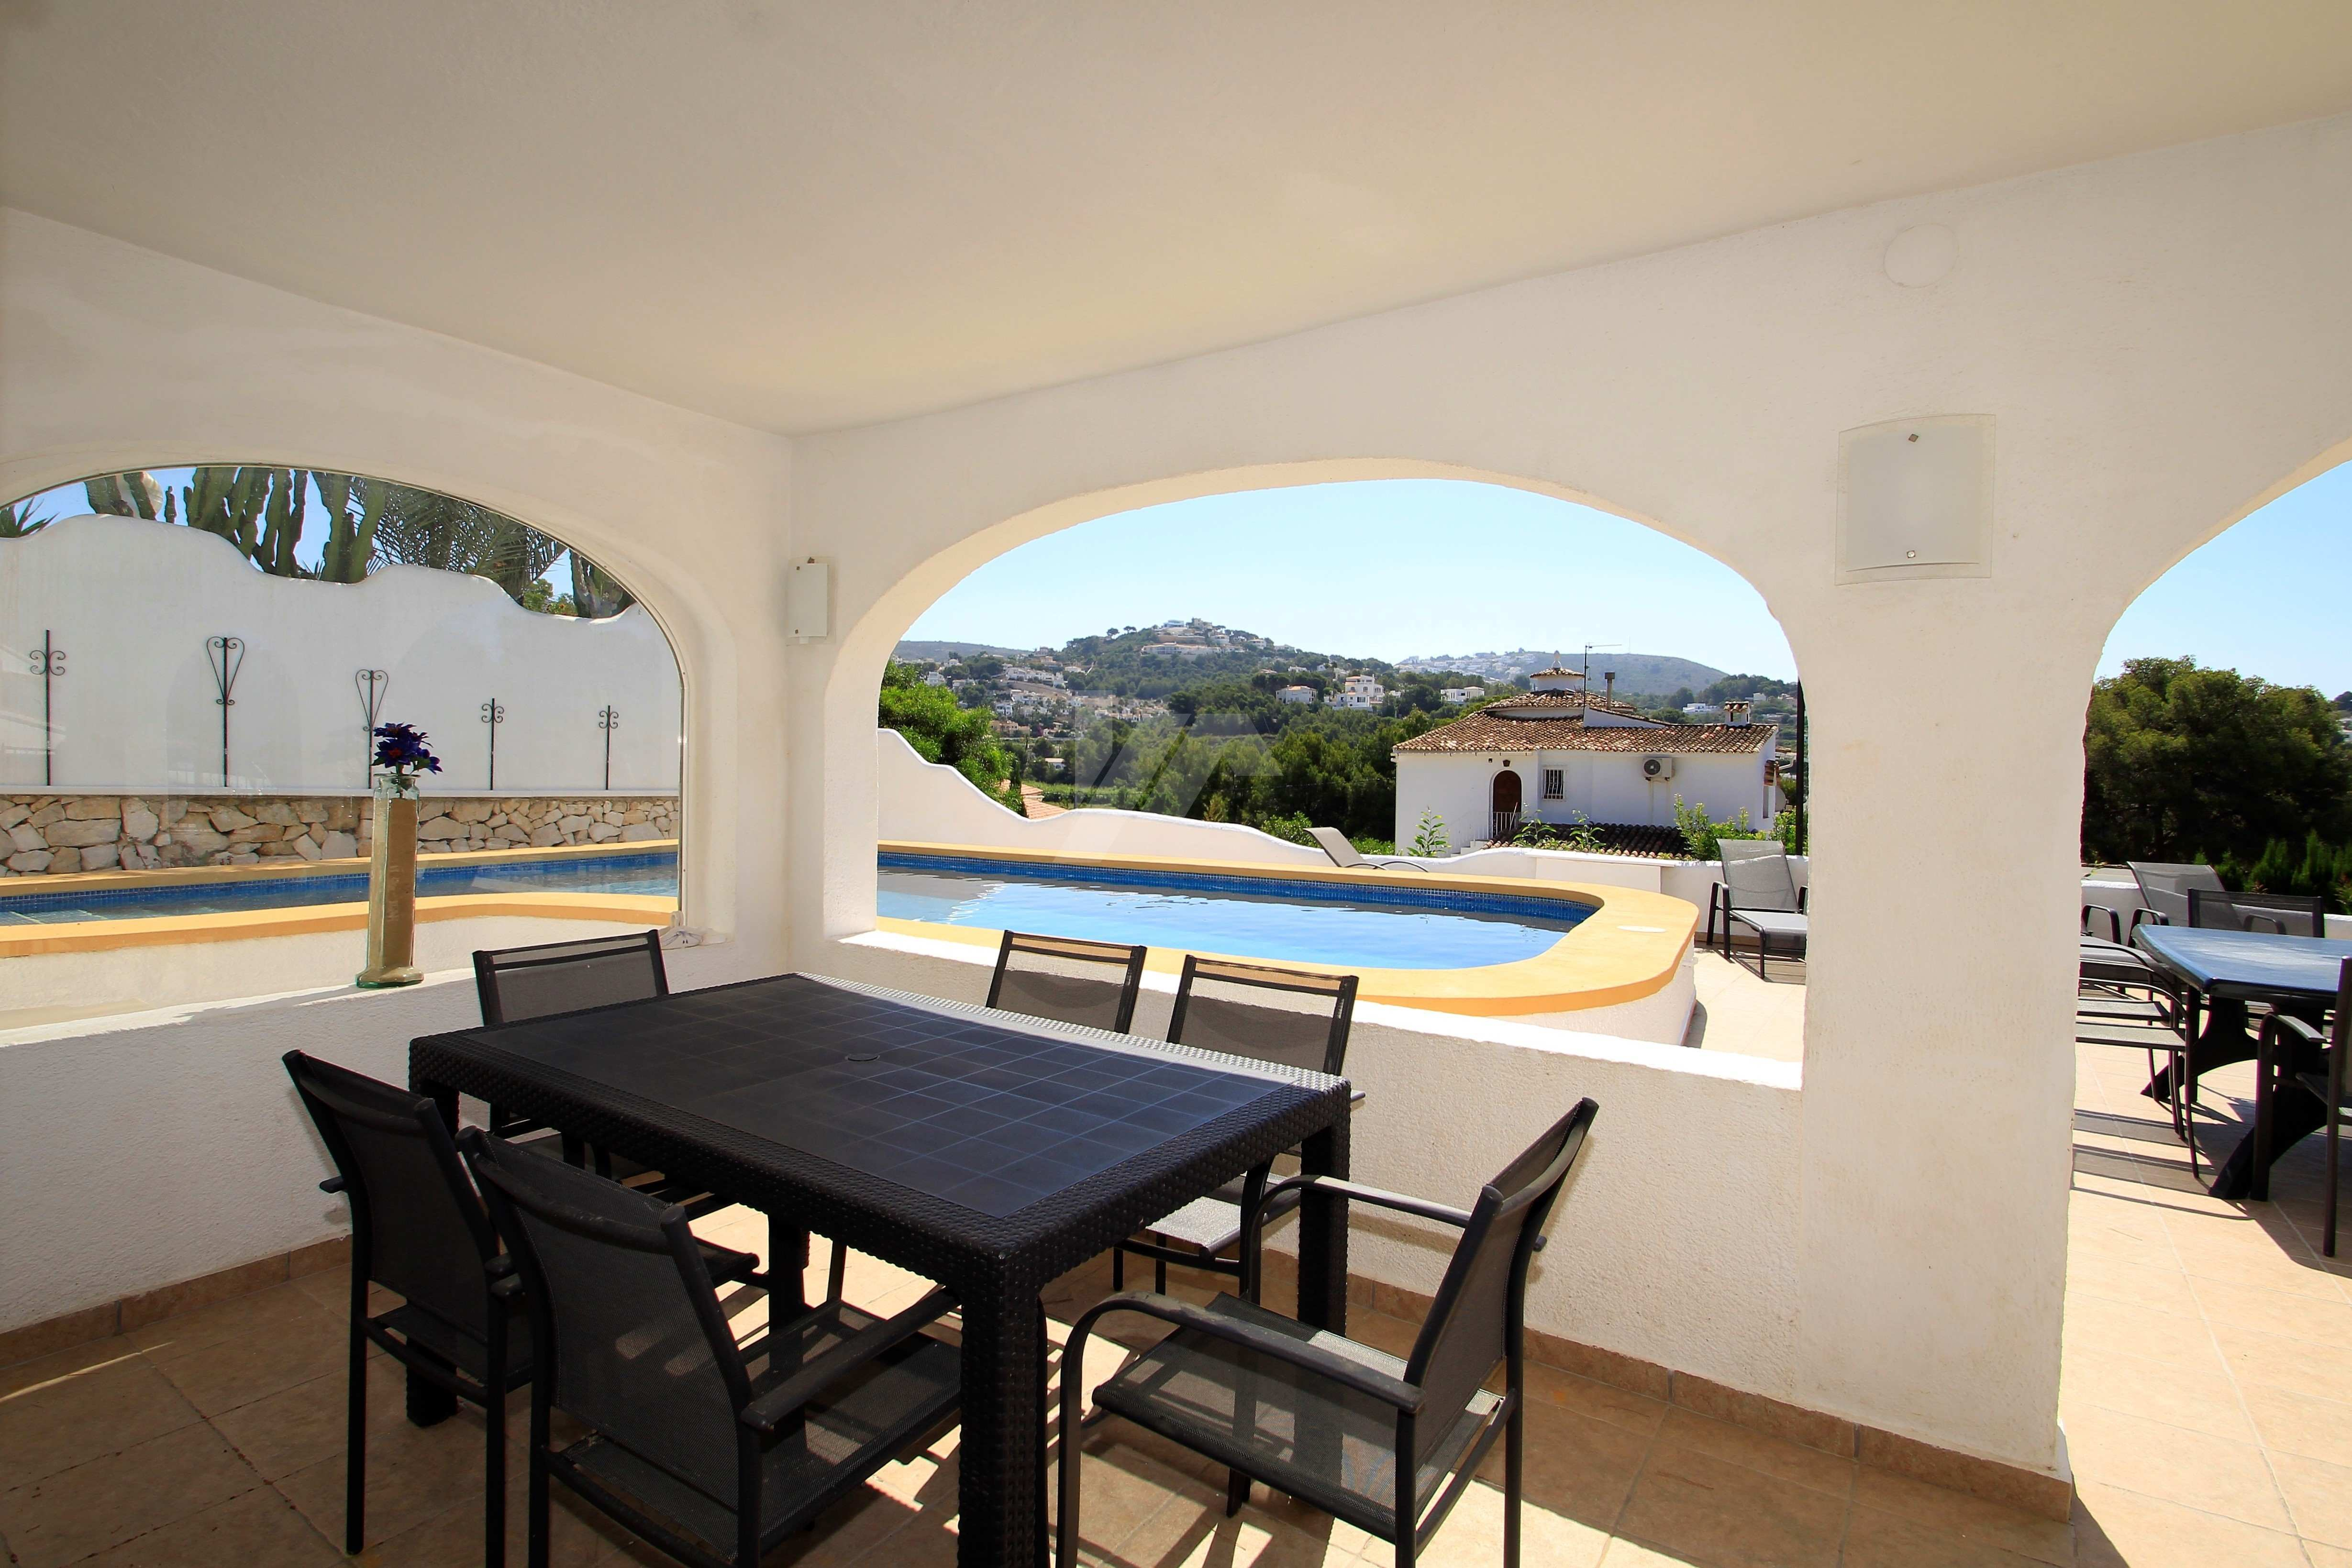 Villa for sale in Moraira, walking distance to town.